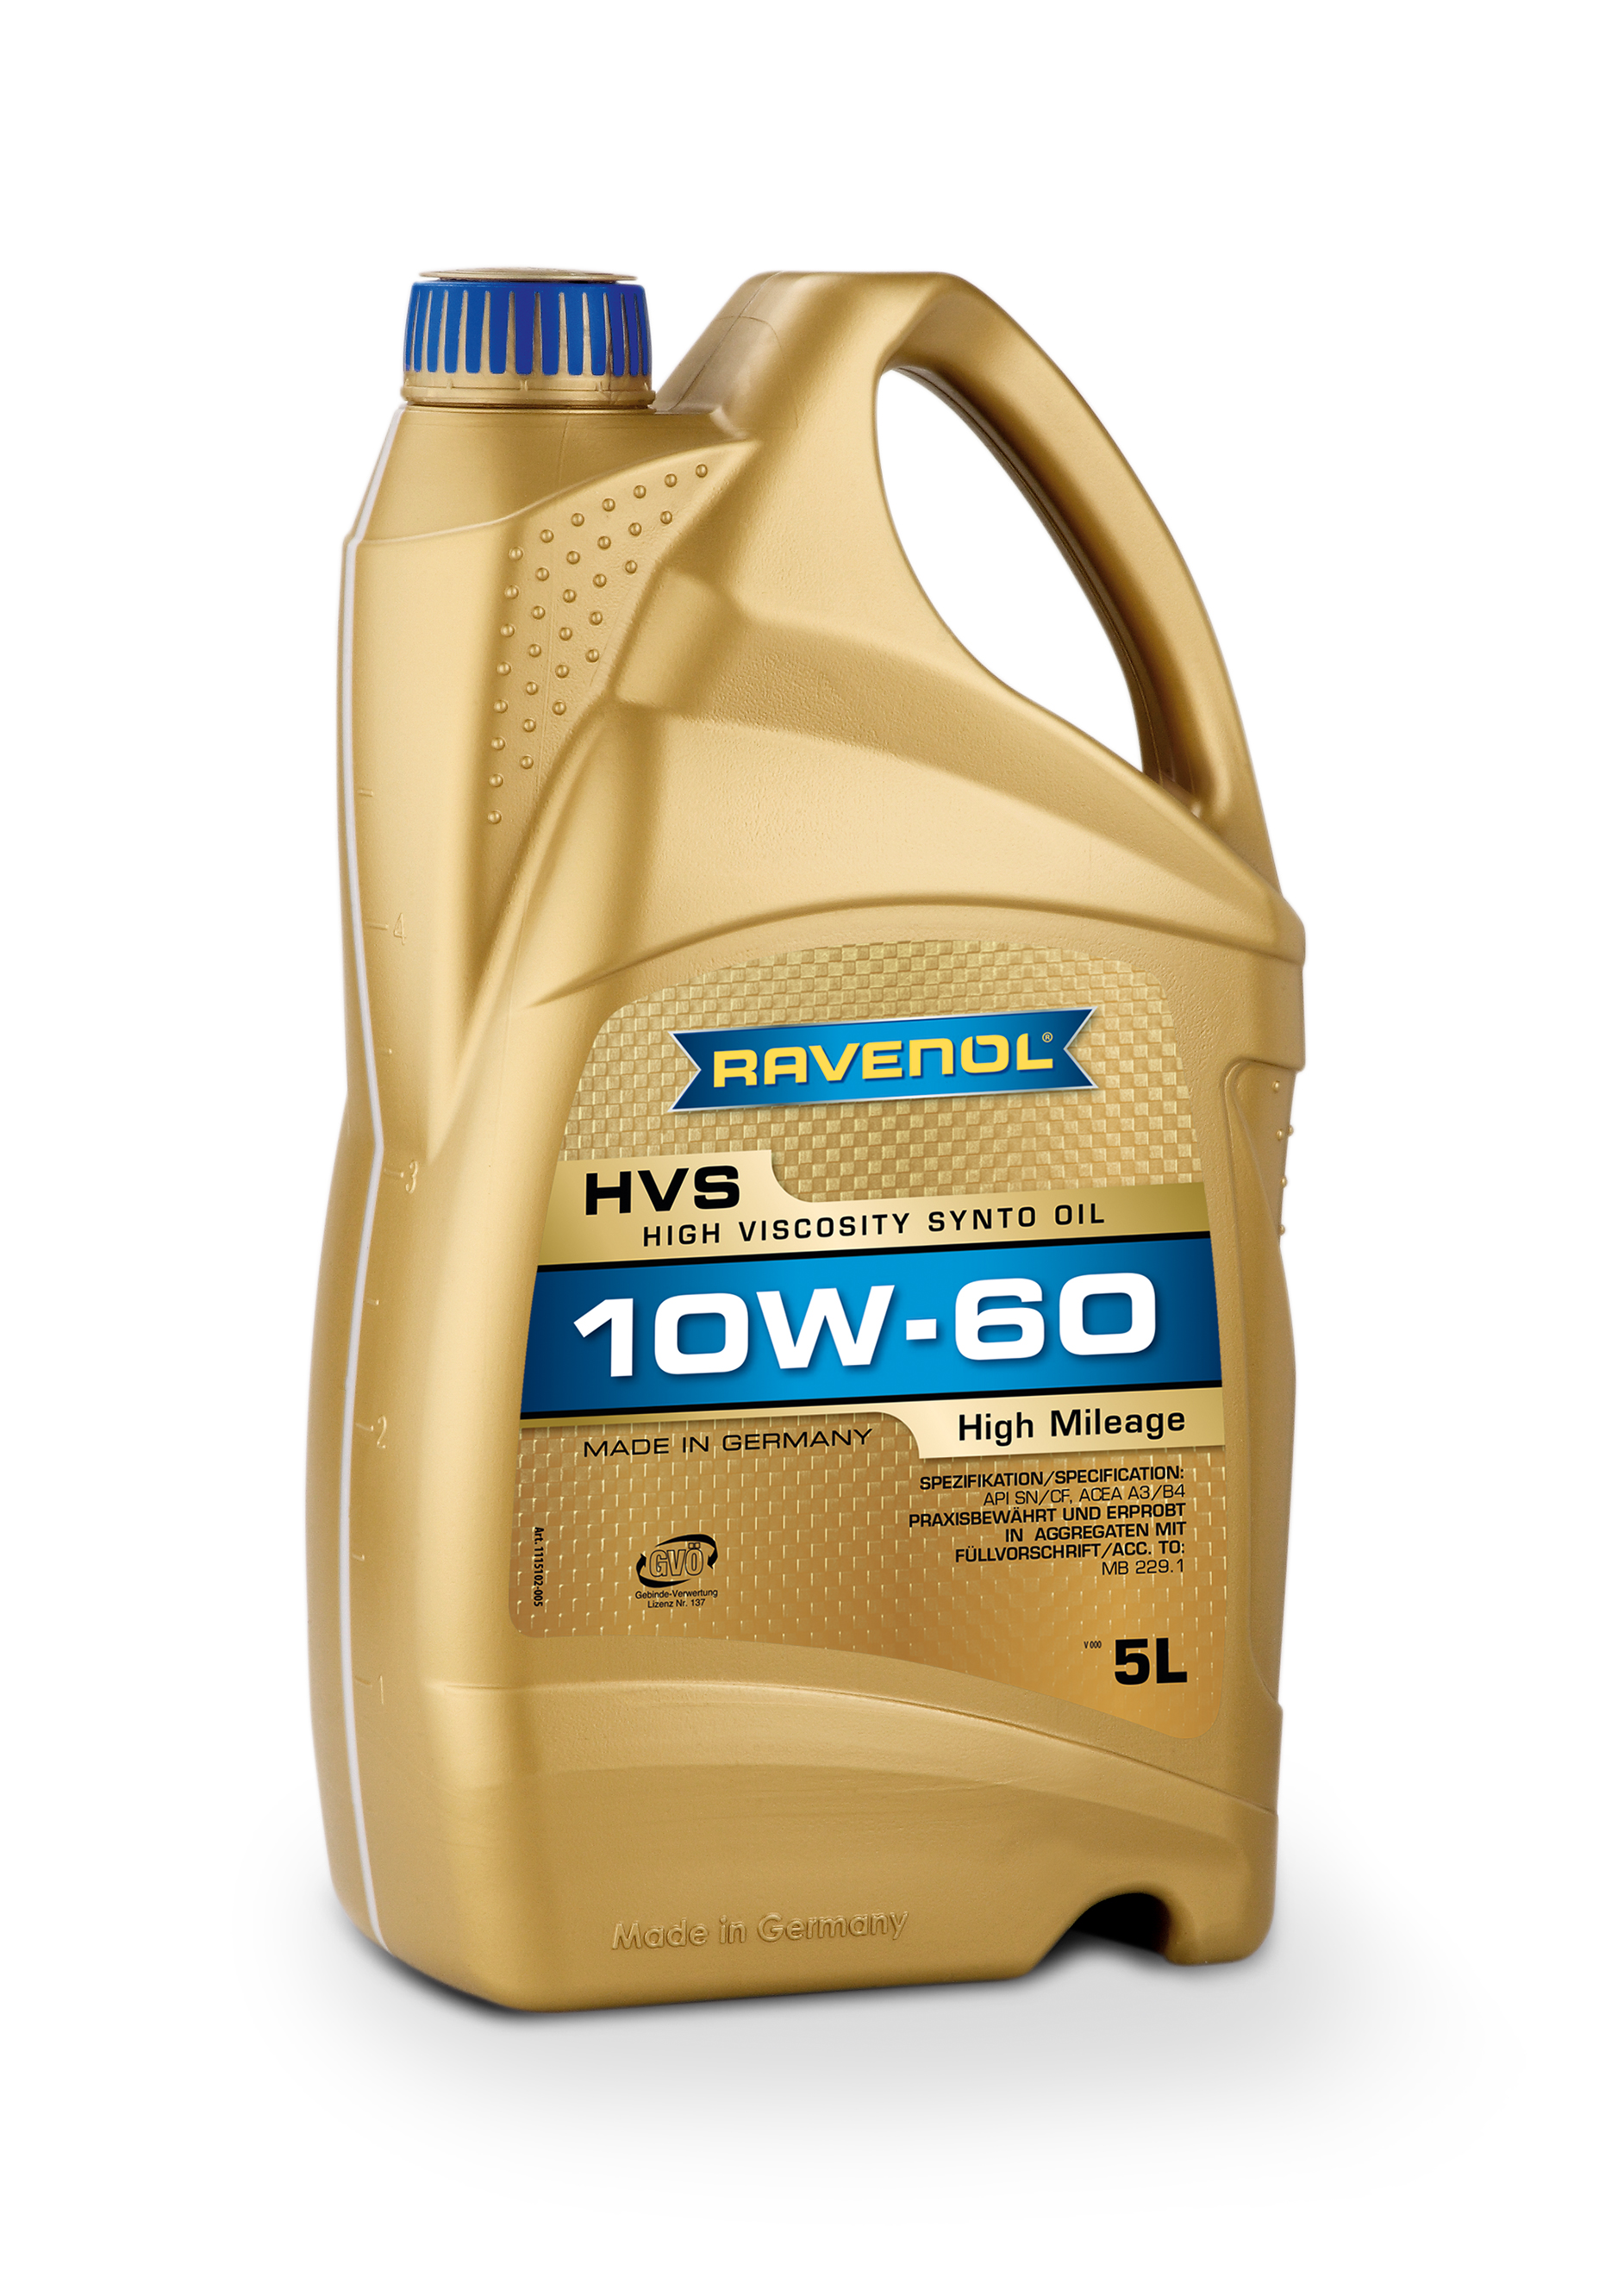 RAVENOL HVS High Viscosity Synto Oil SAE 10W60